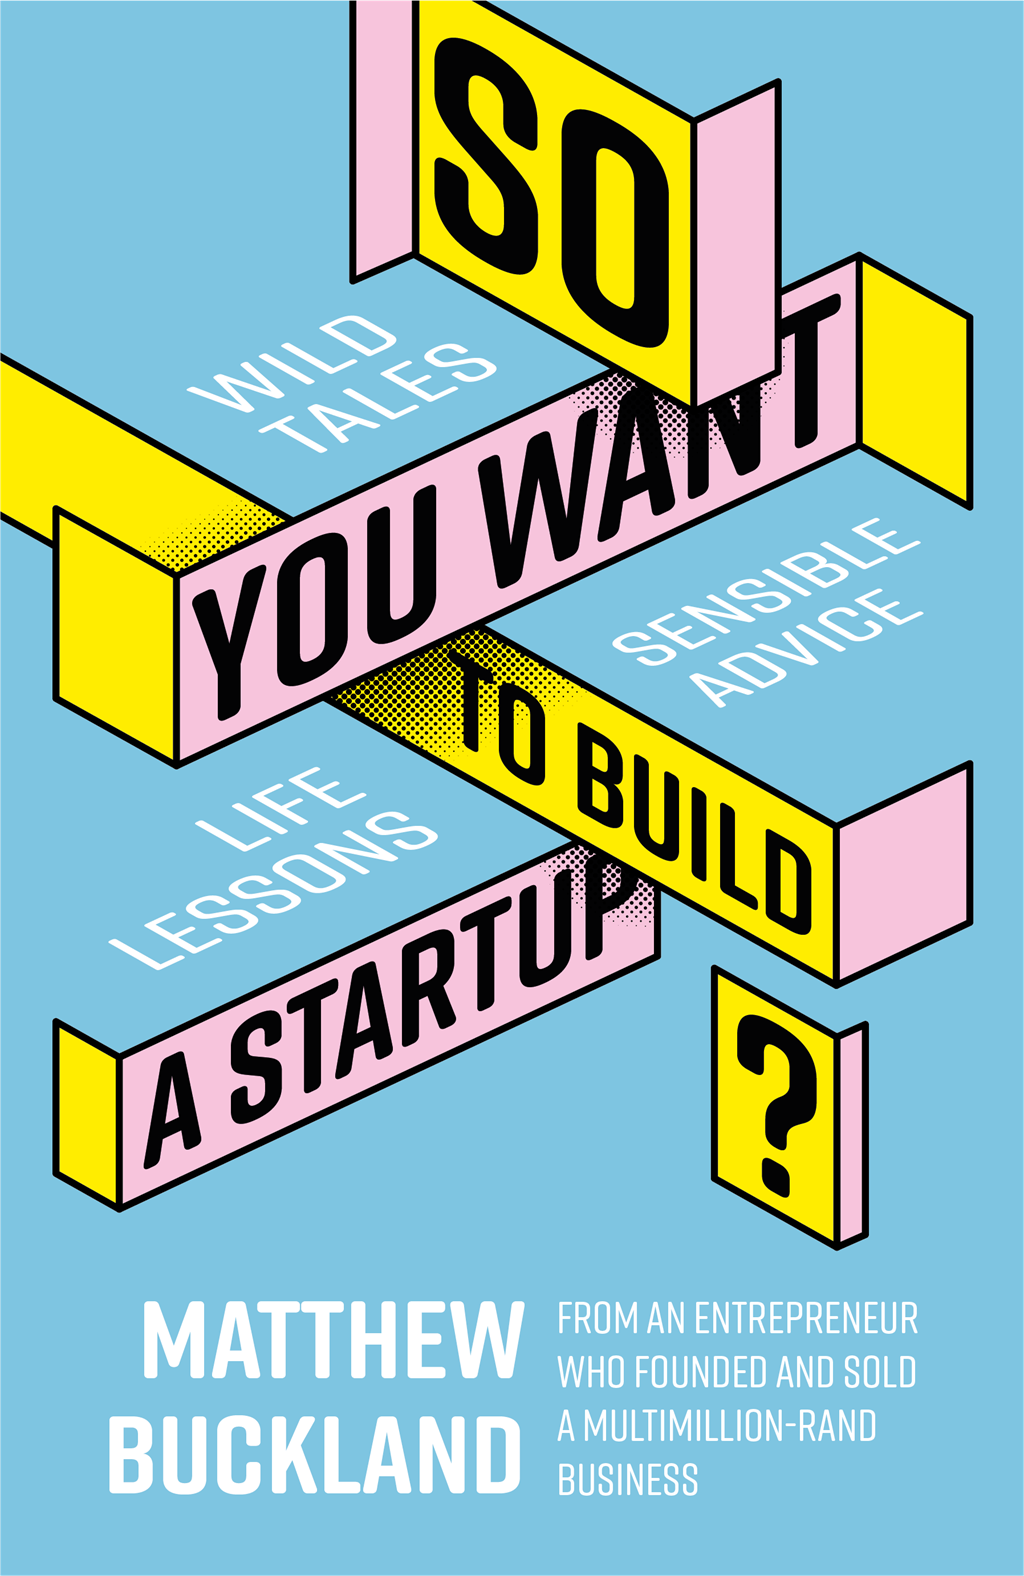 So you want to Build a Startup by Matthew Buckland published by Tafelberg.